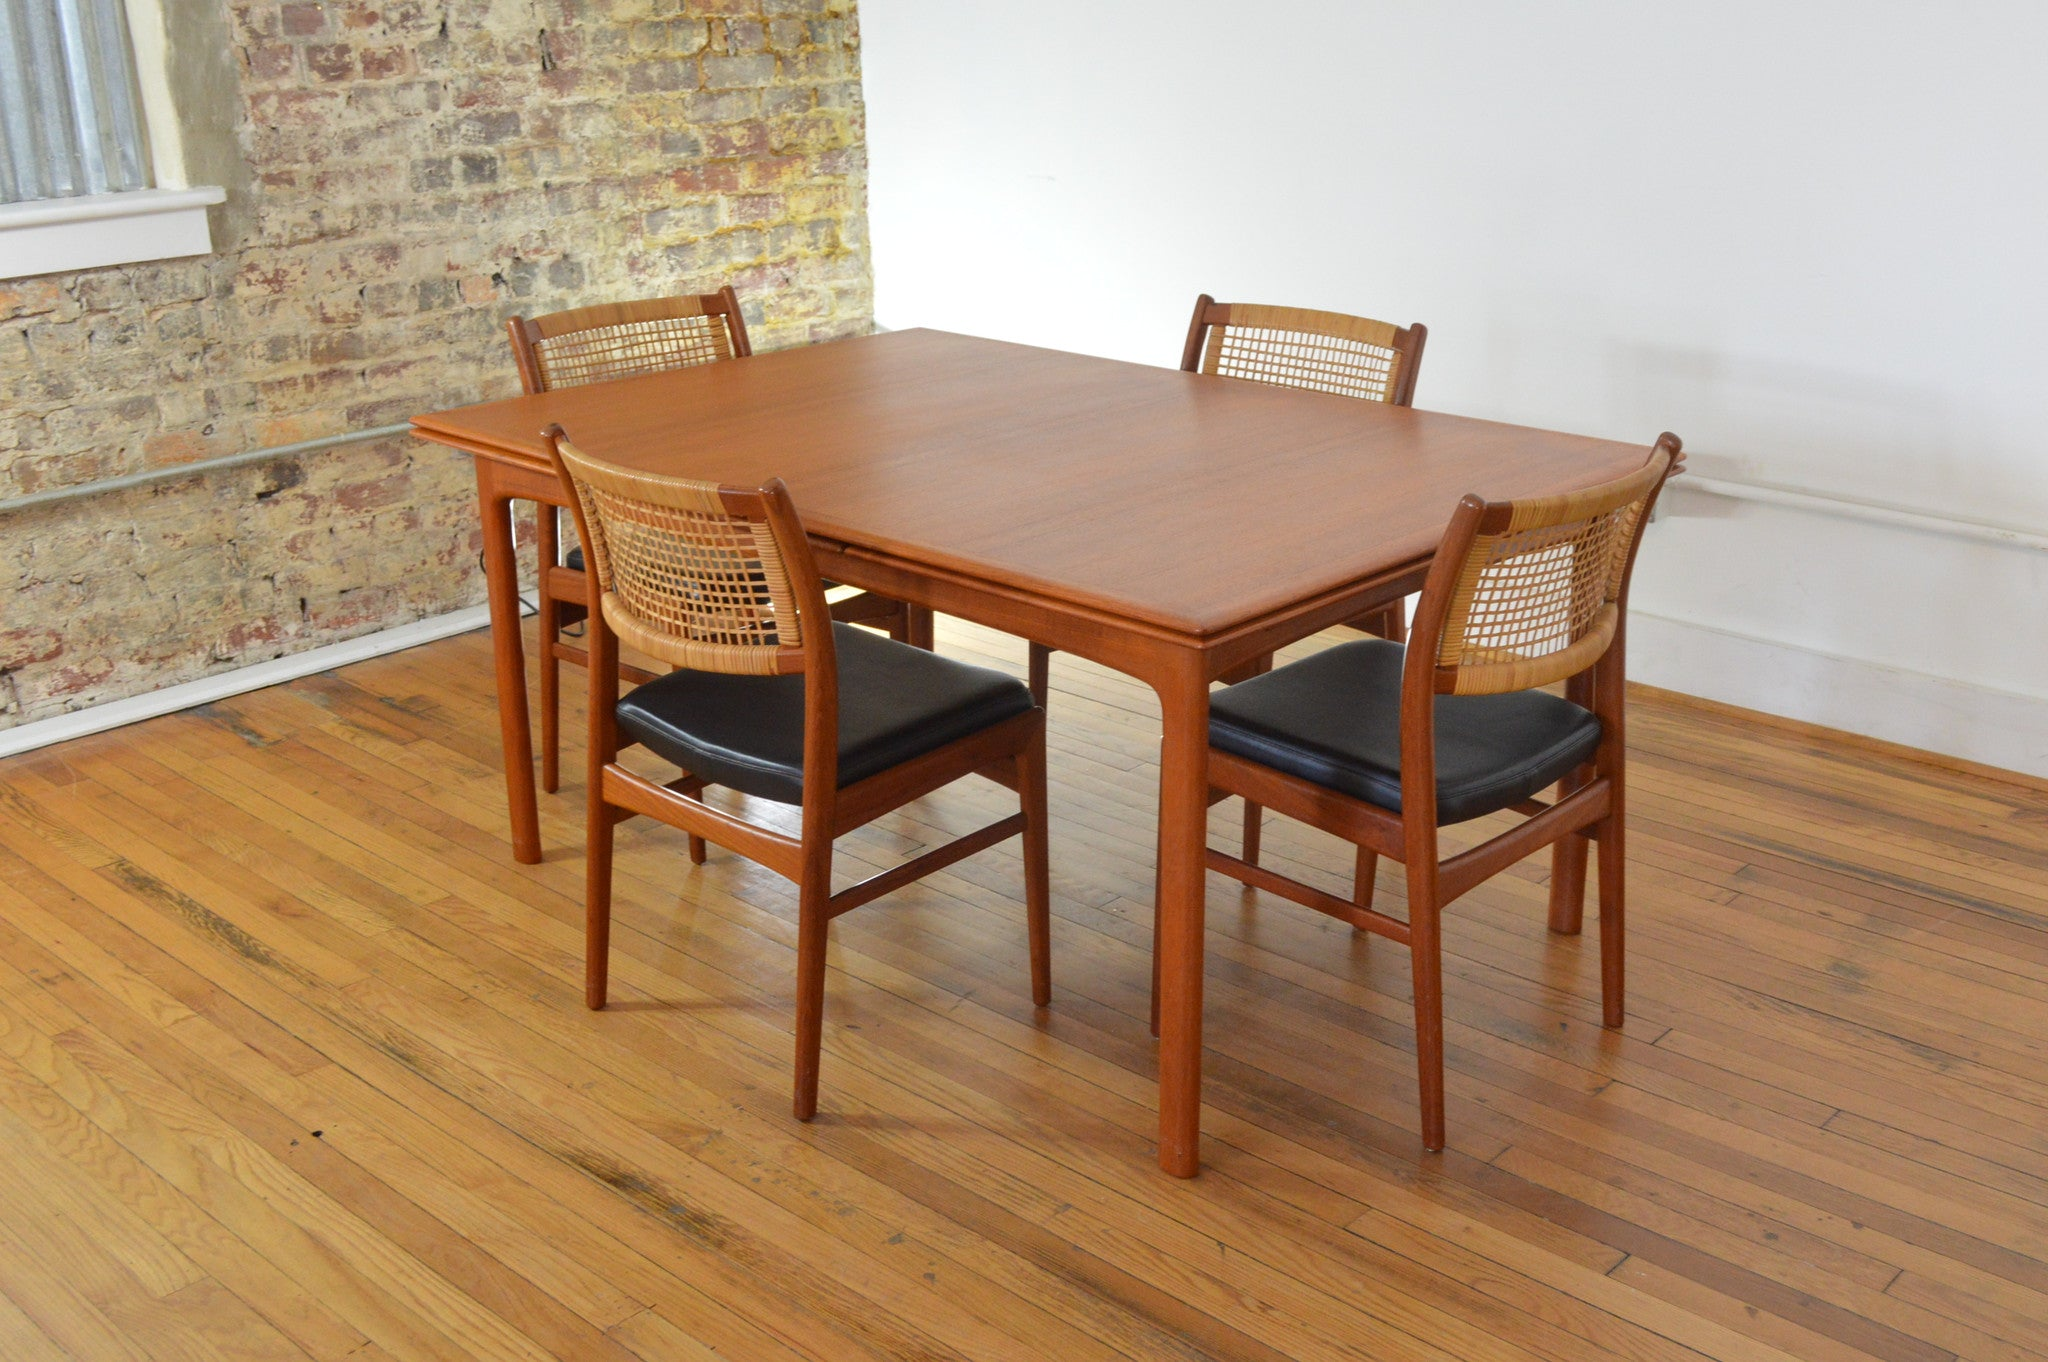 Swedish Refractory Teak Dining Table - GalaxieModern